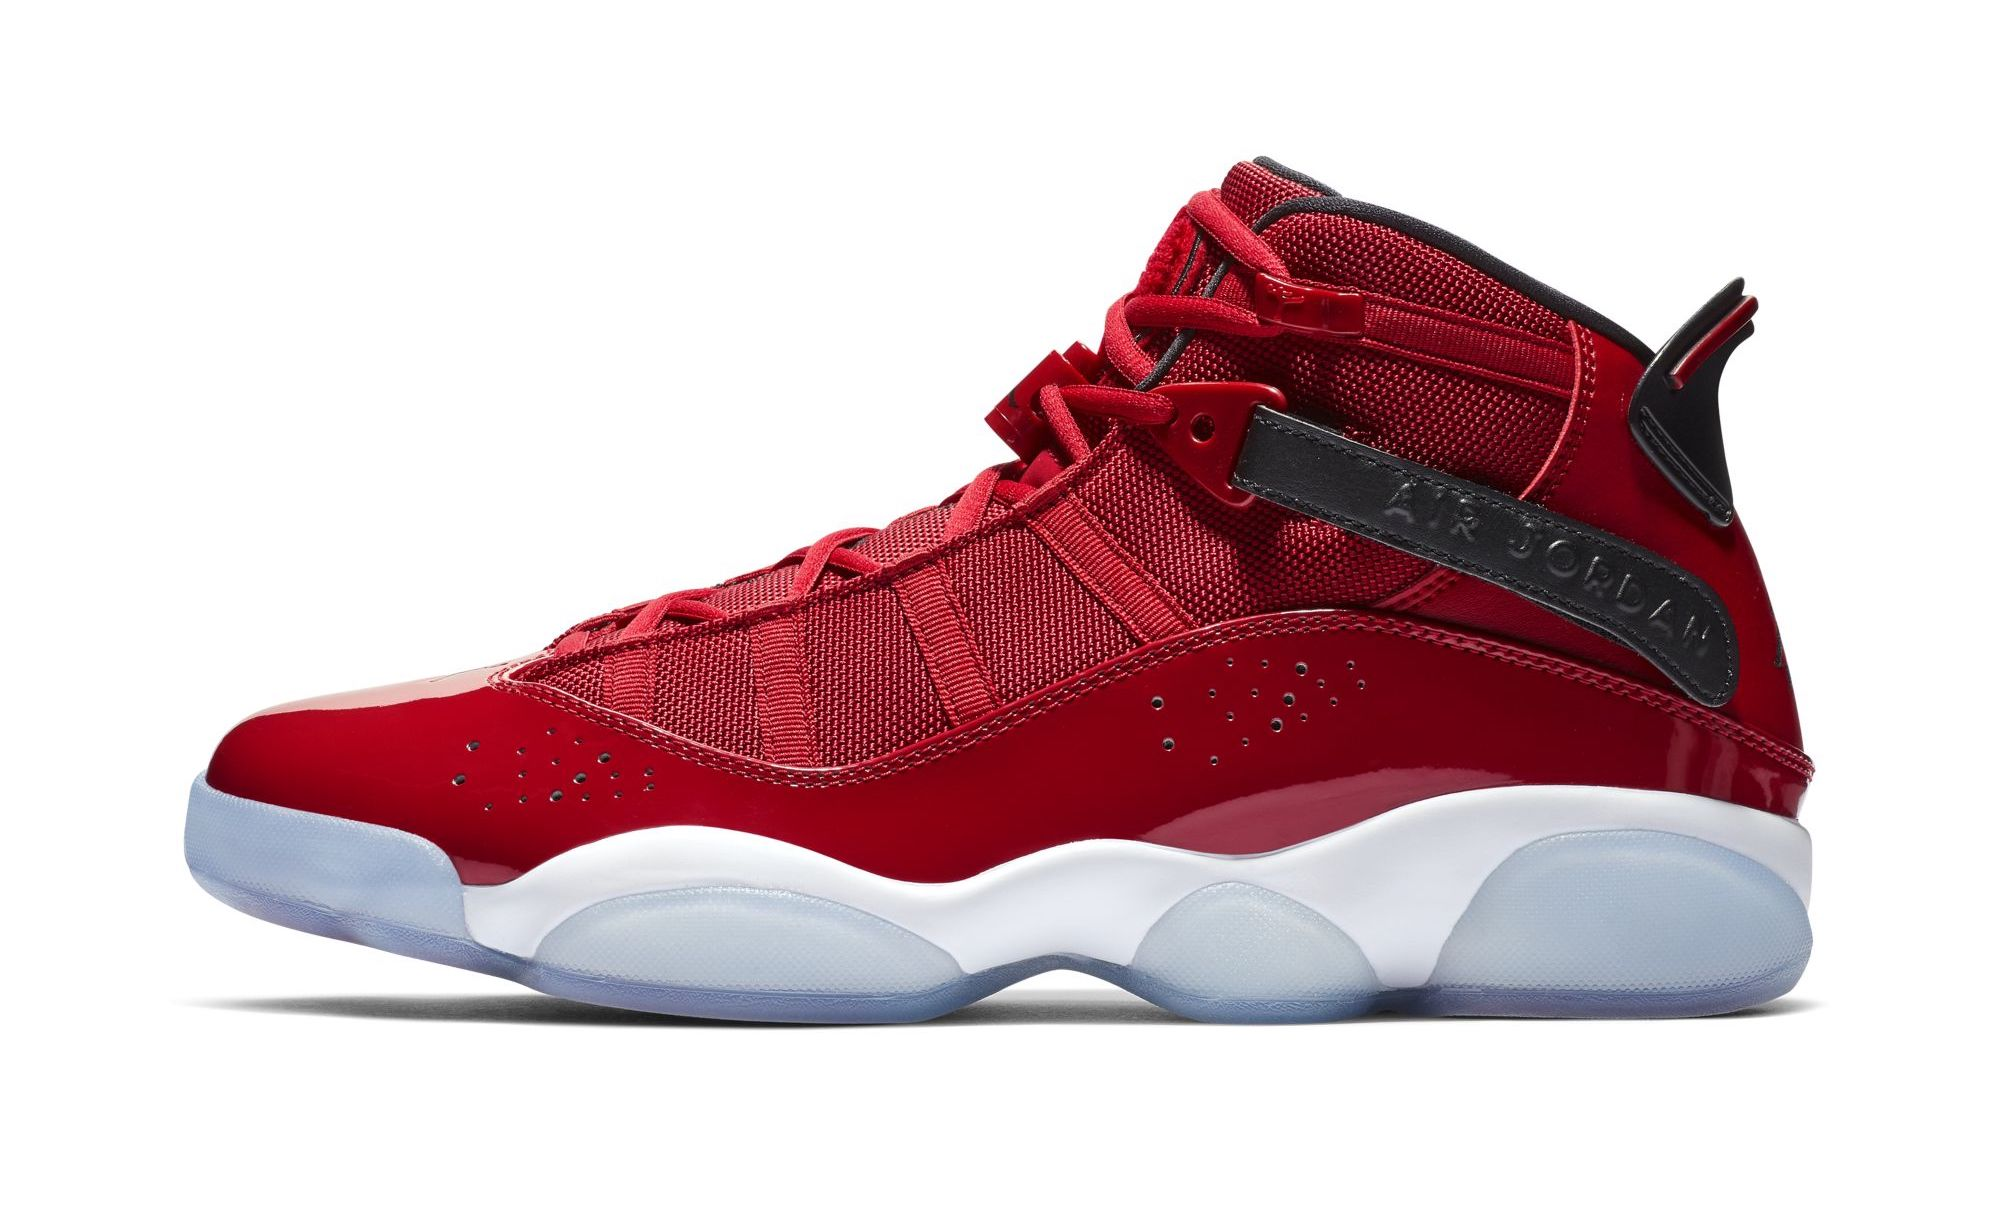 outlet store 5be79 7fe53 The Jordan 6 Rings is back in more colorways to start off 2019, and it s  coming in a University Red White theme. The style mixes elements from the  Air ...